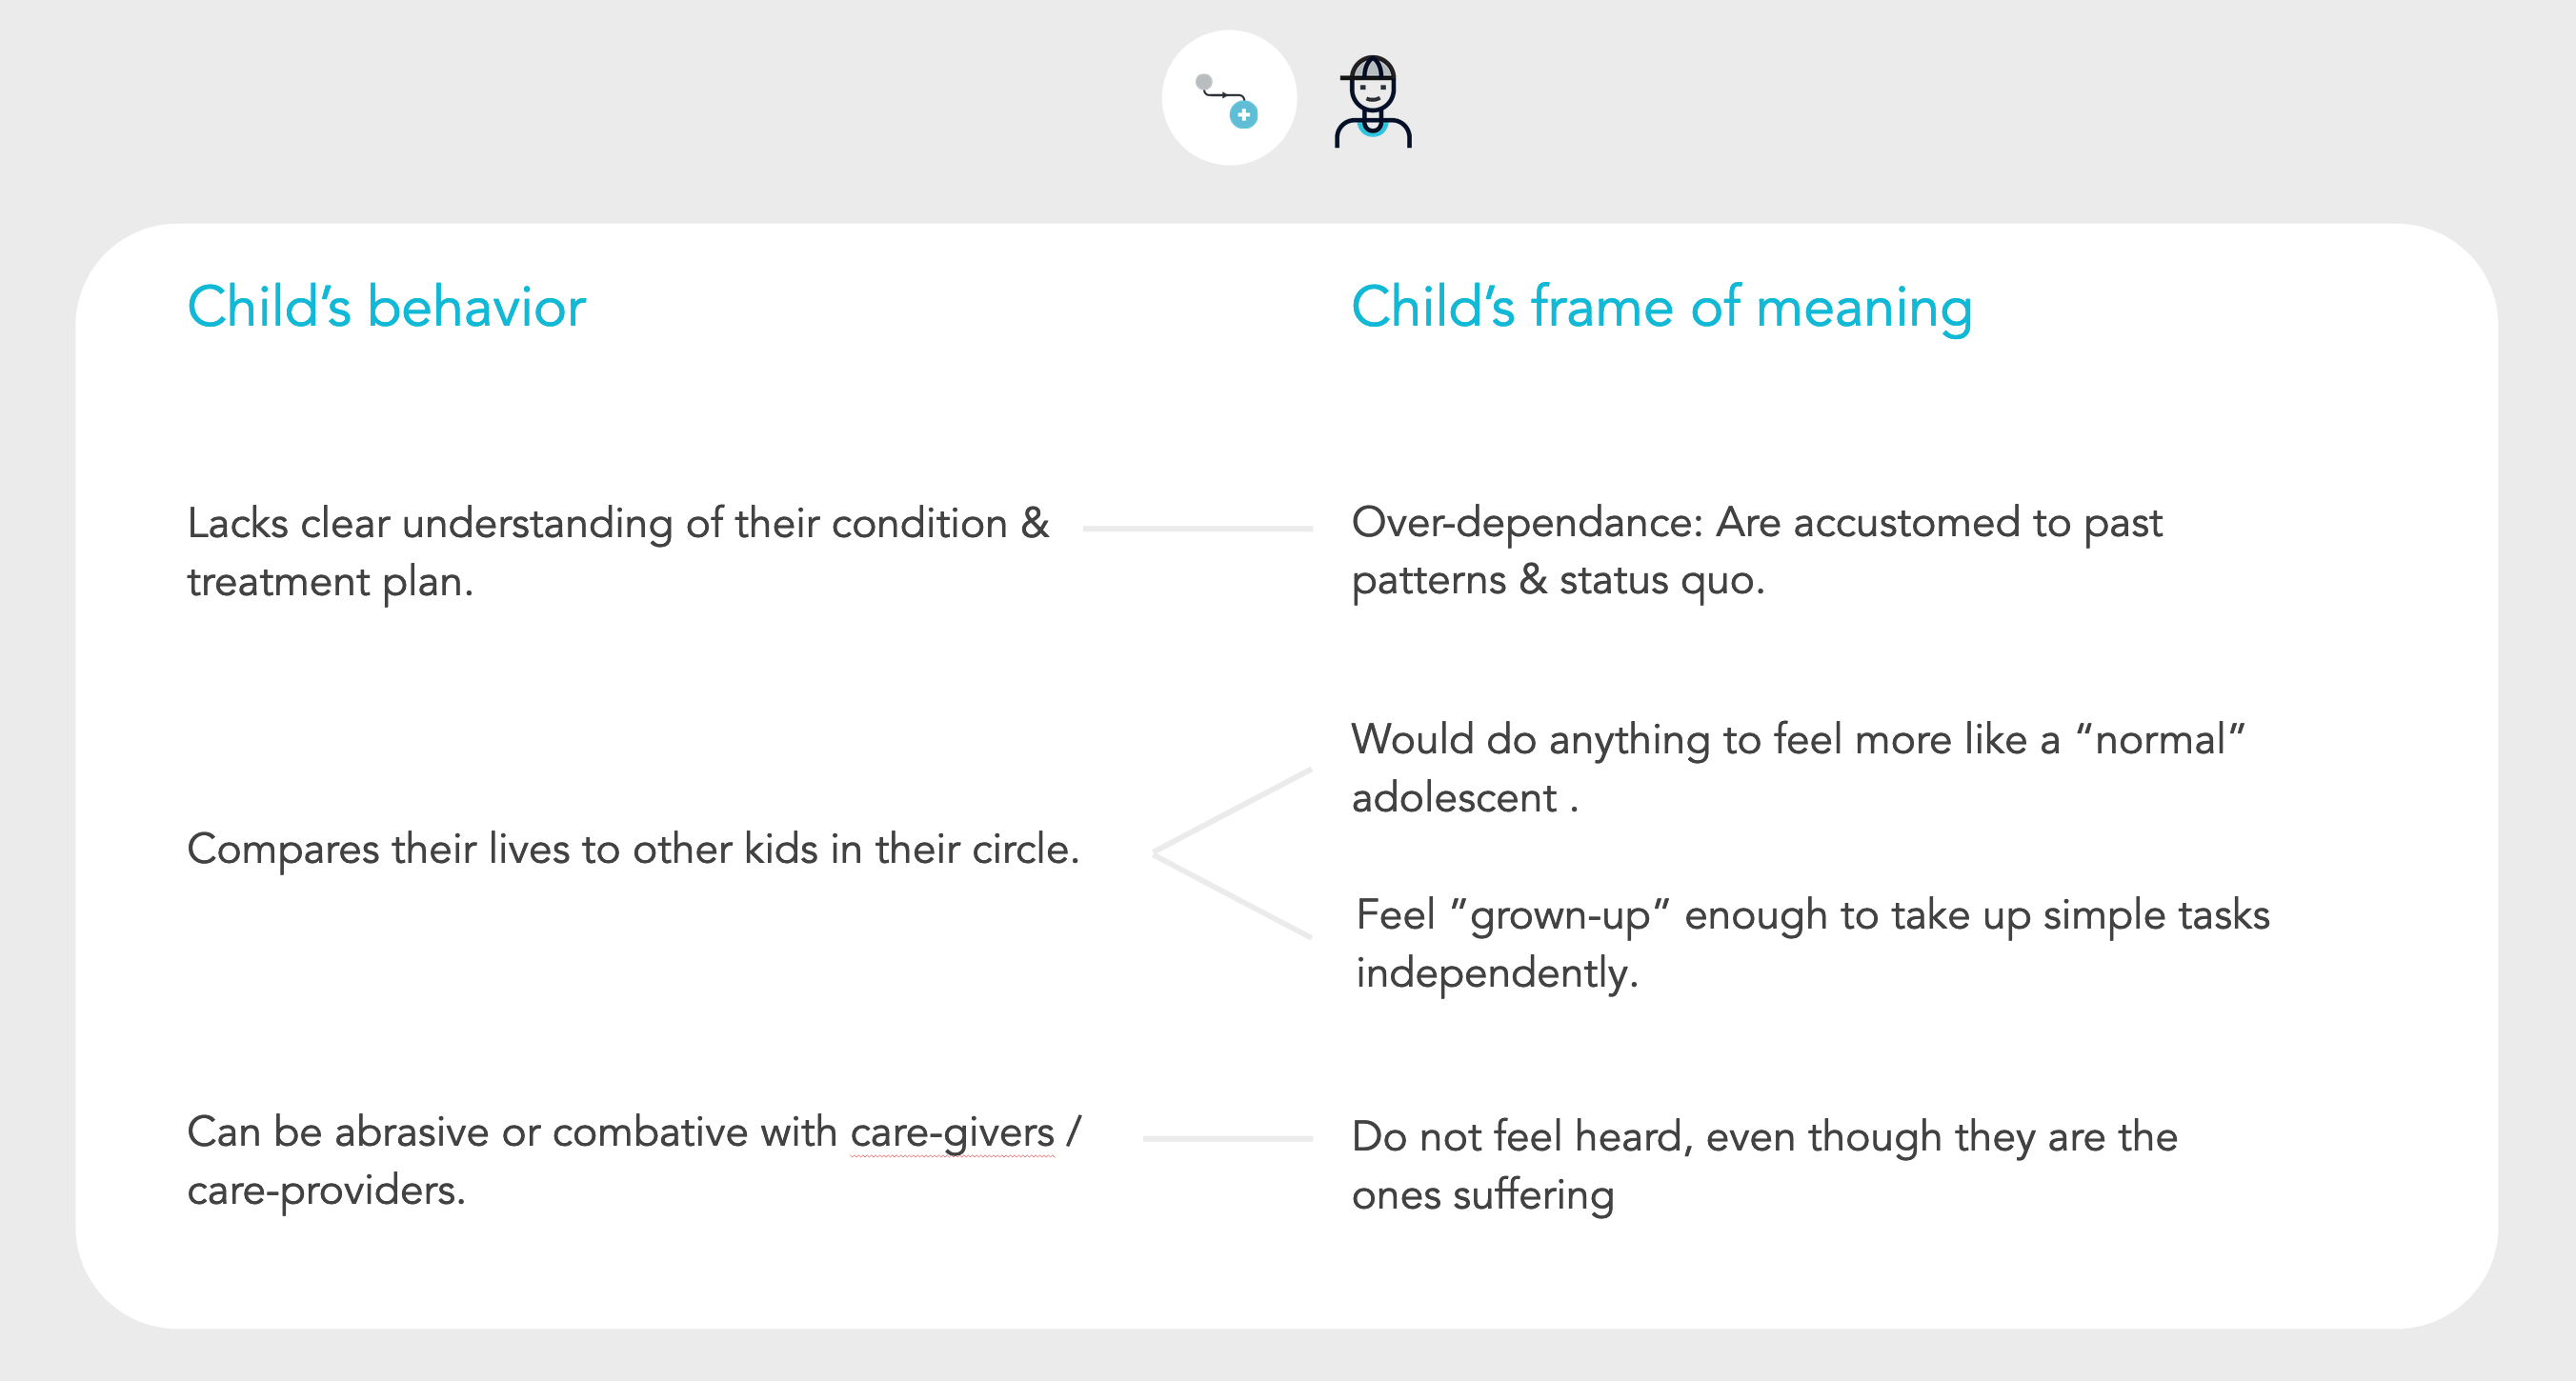 A Patient's Frame of Meaning